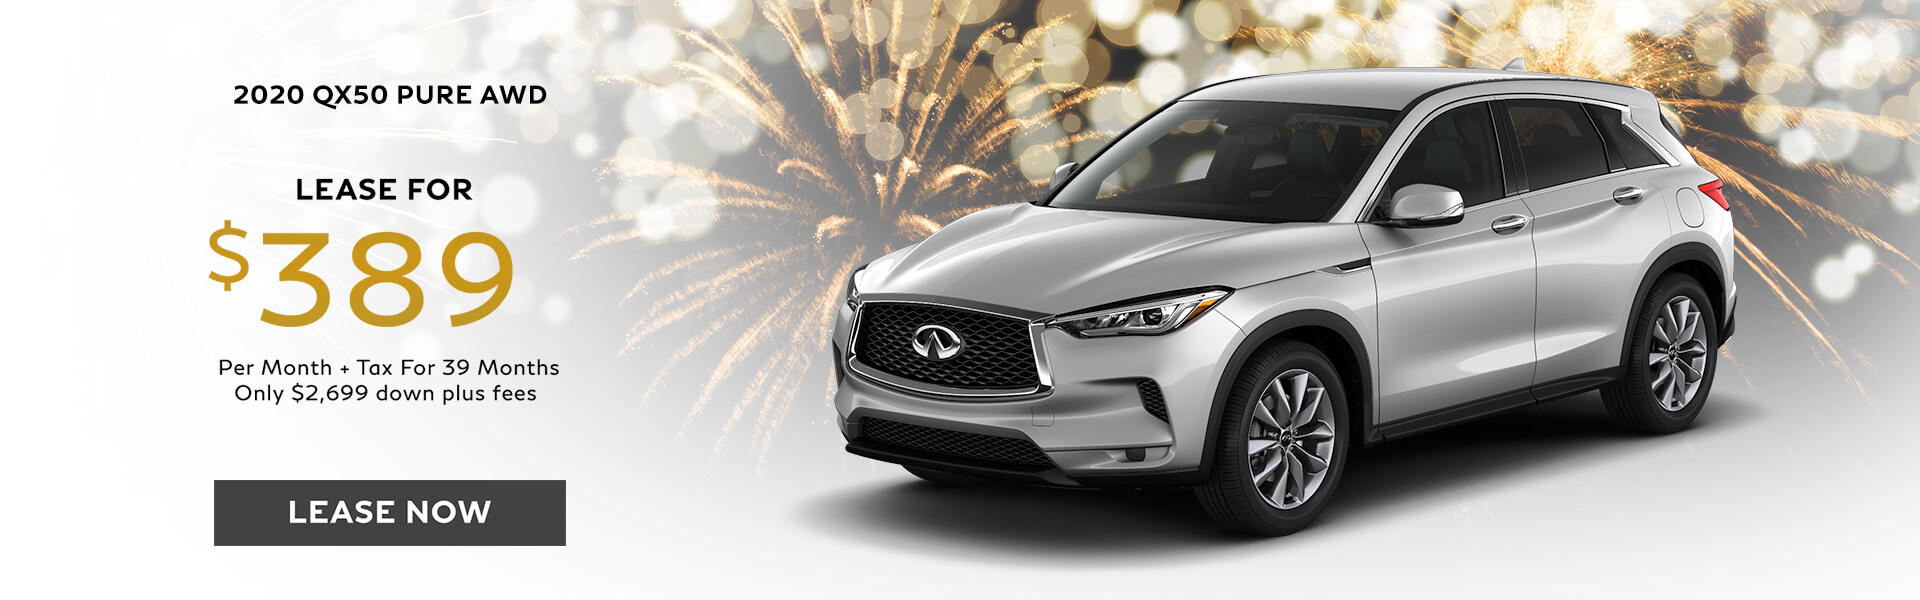 QX50 PURE - Lease for $389